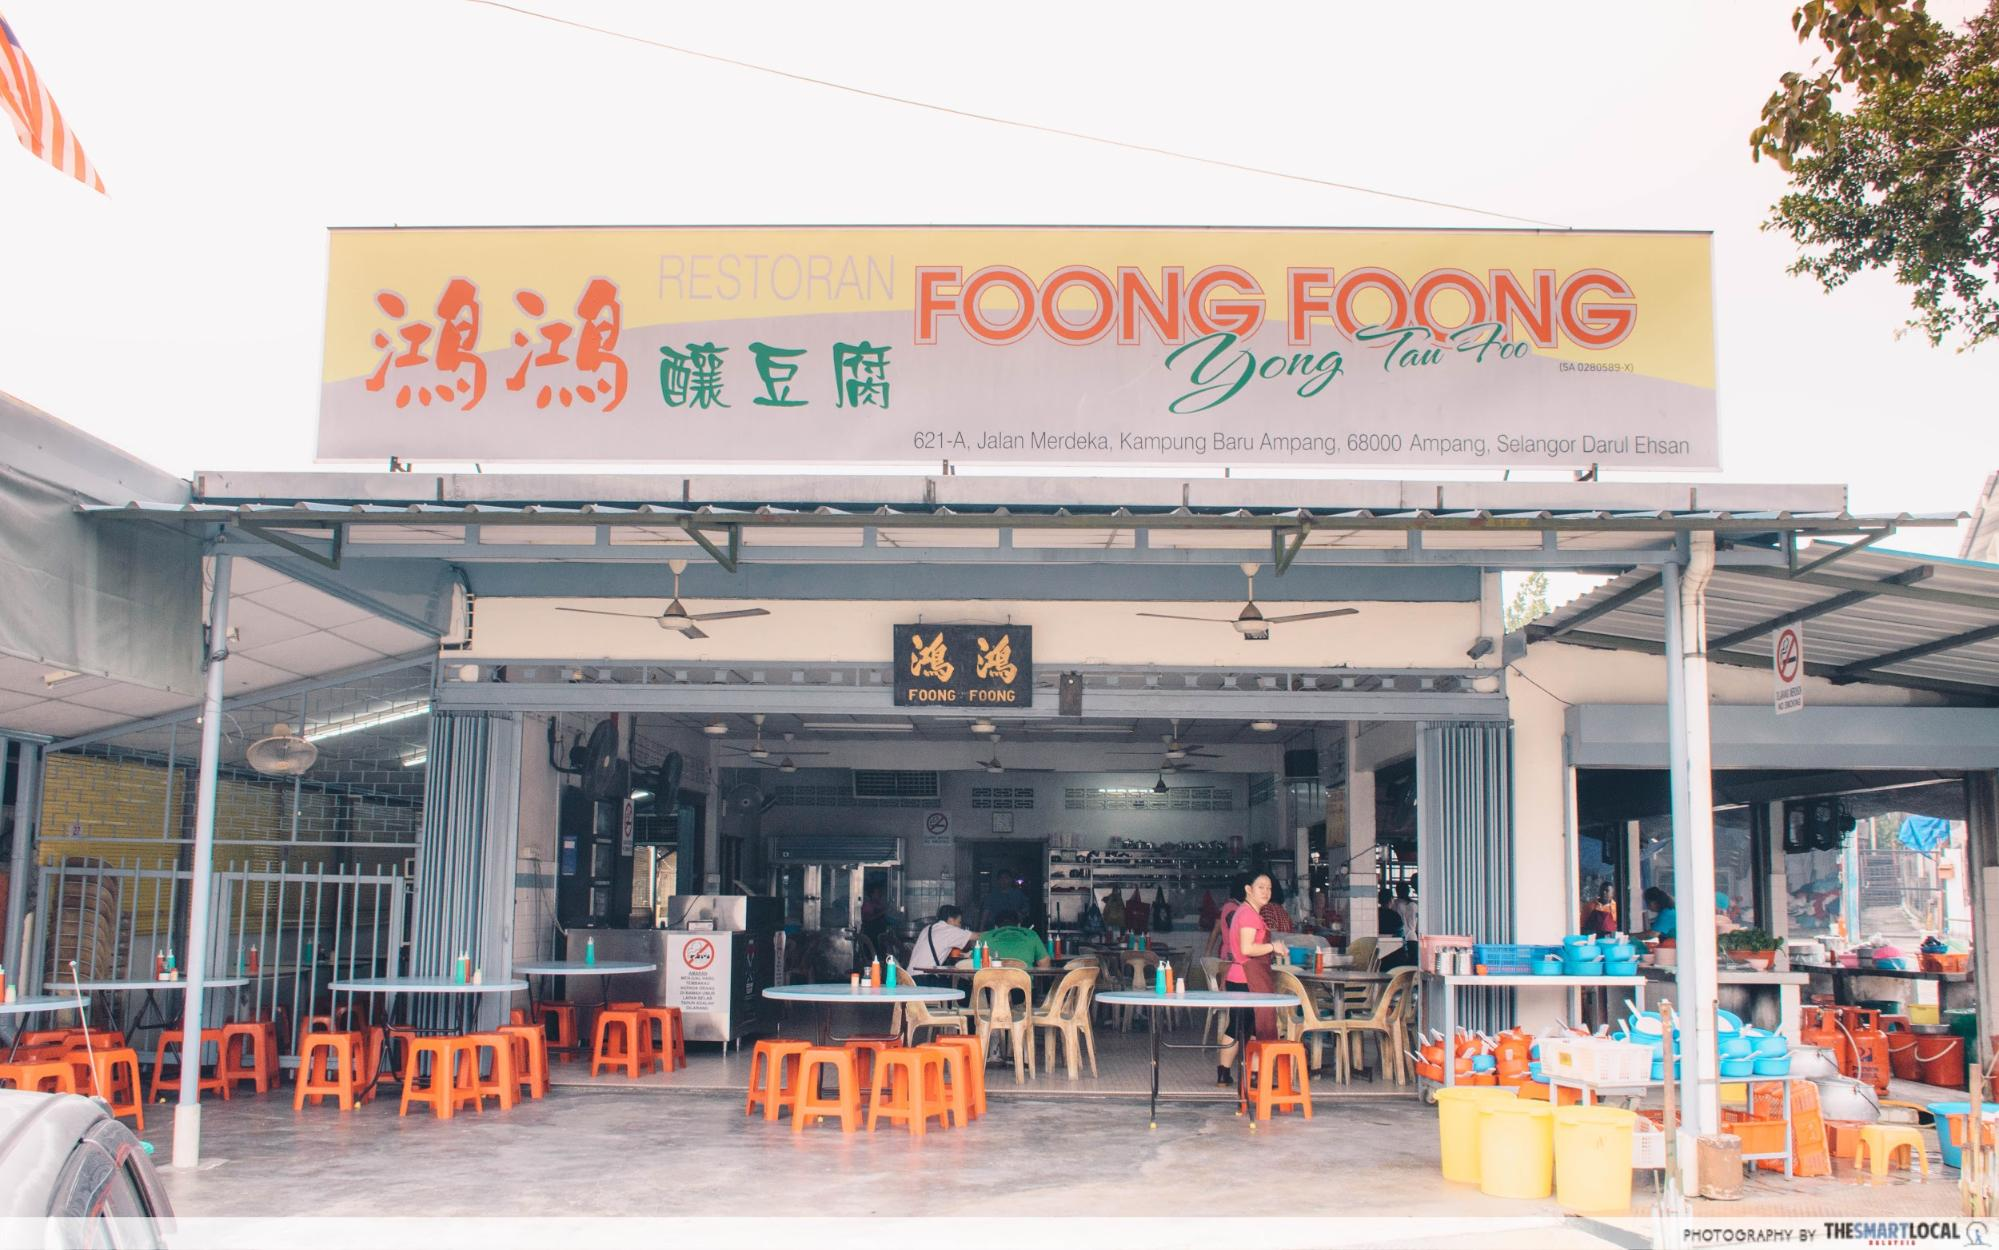 Foong Foong storefront